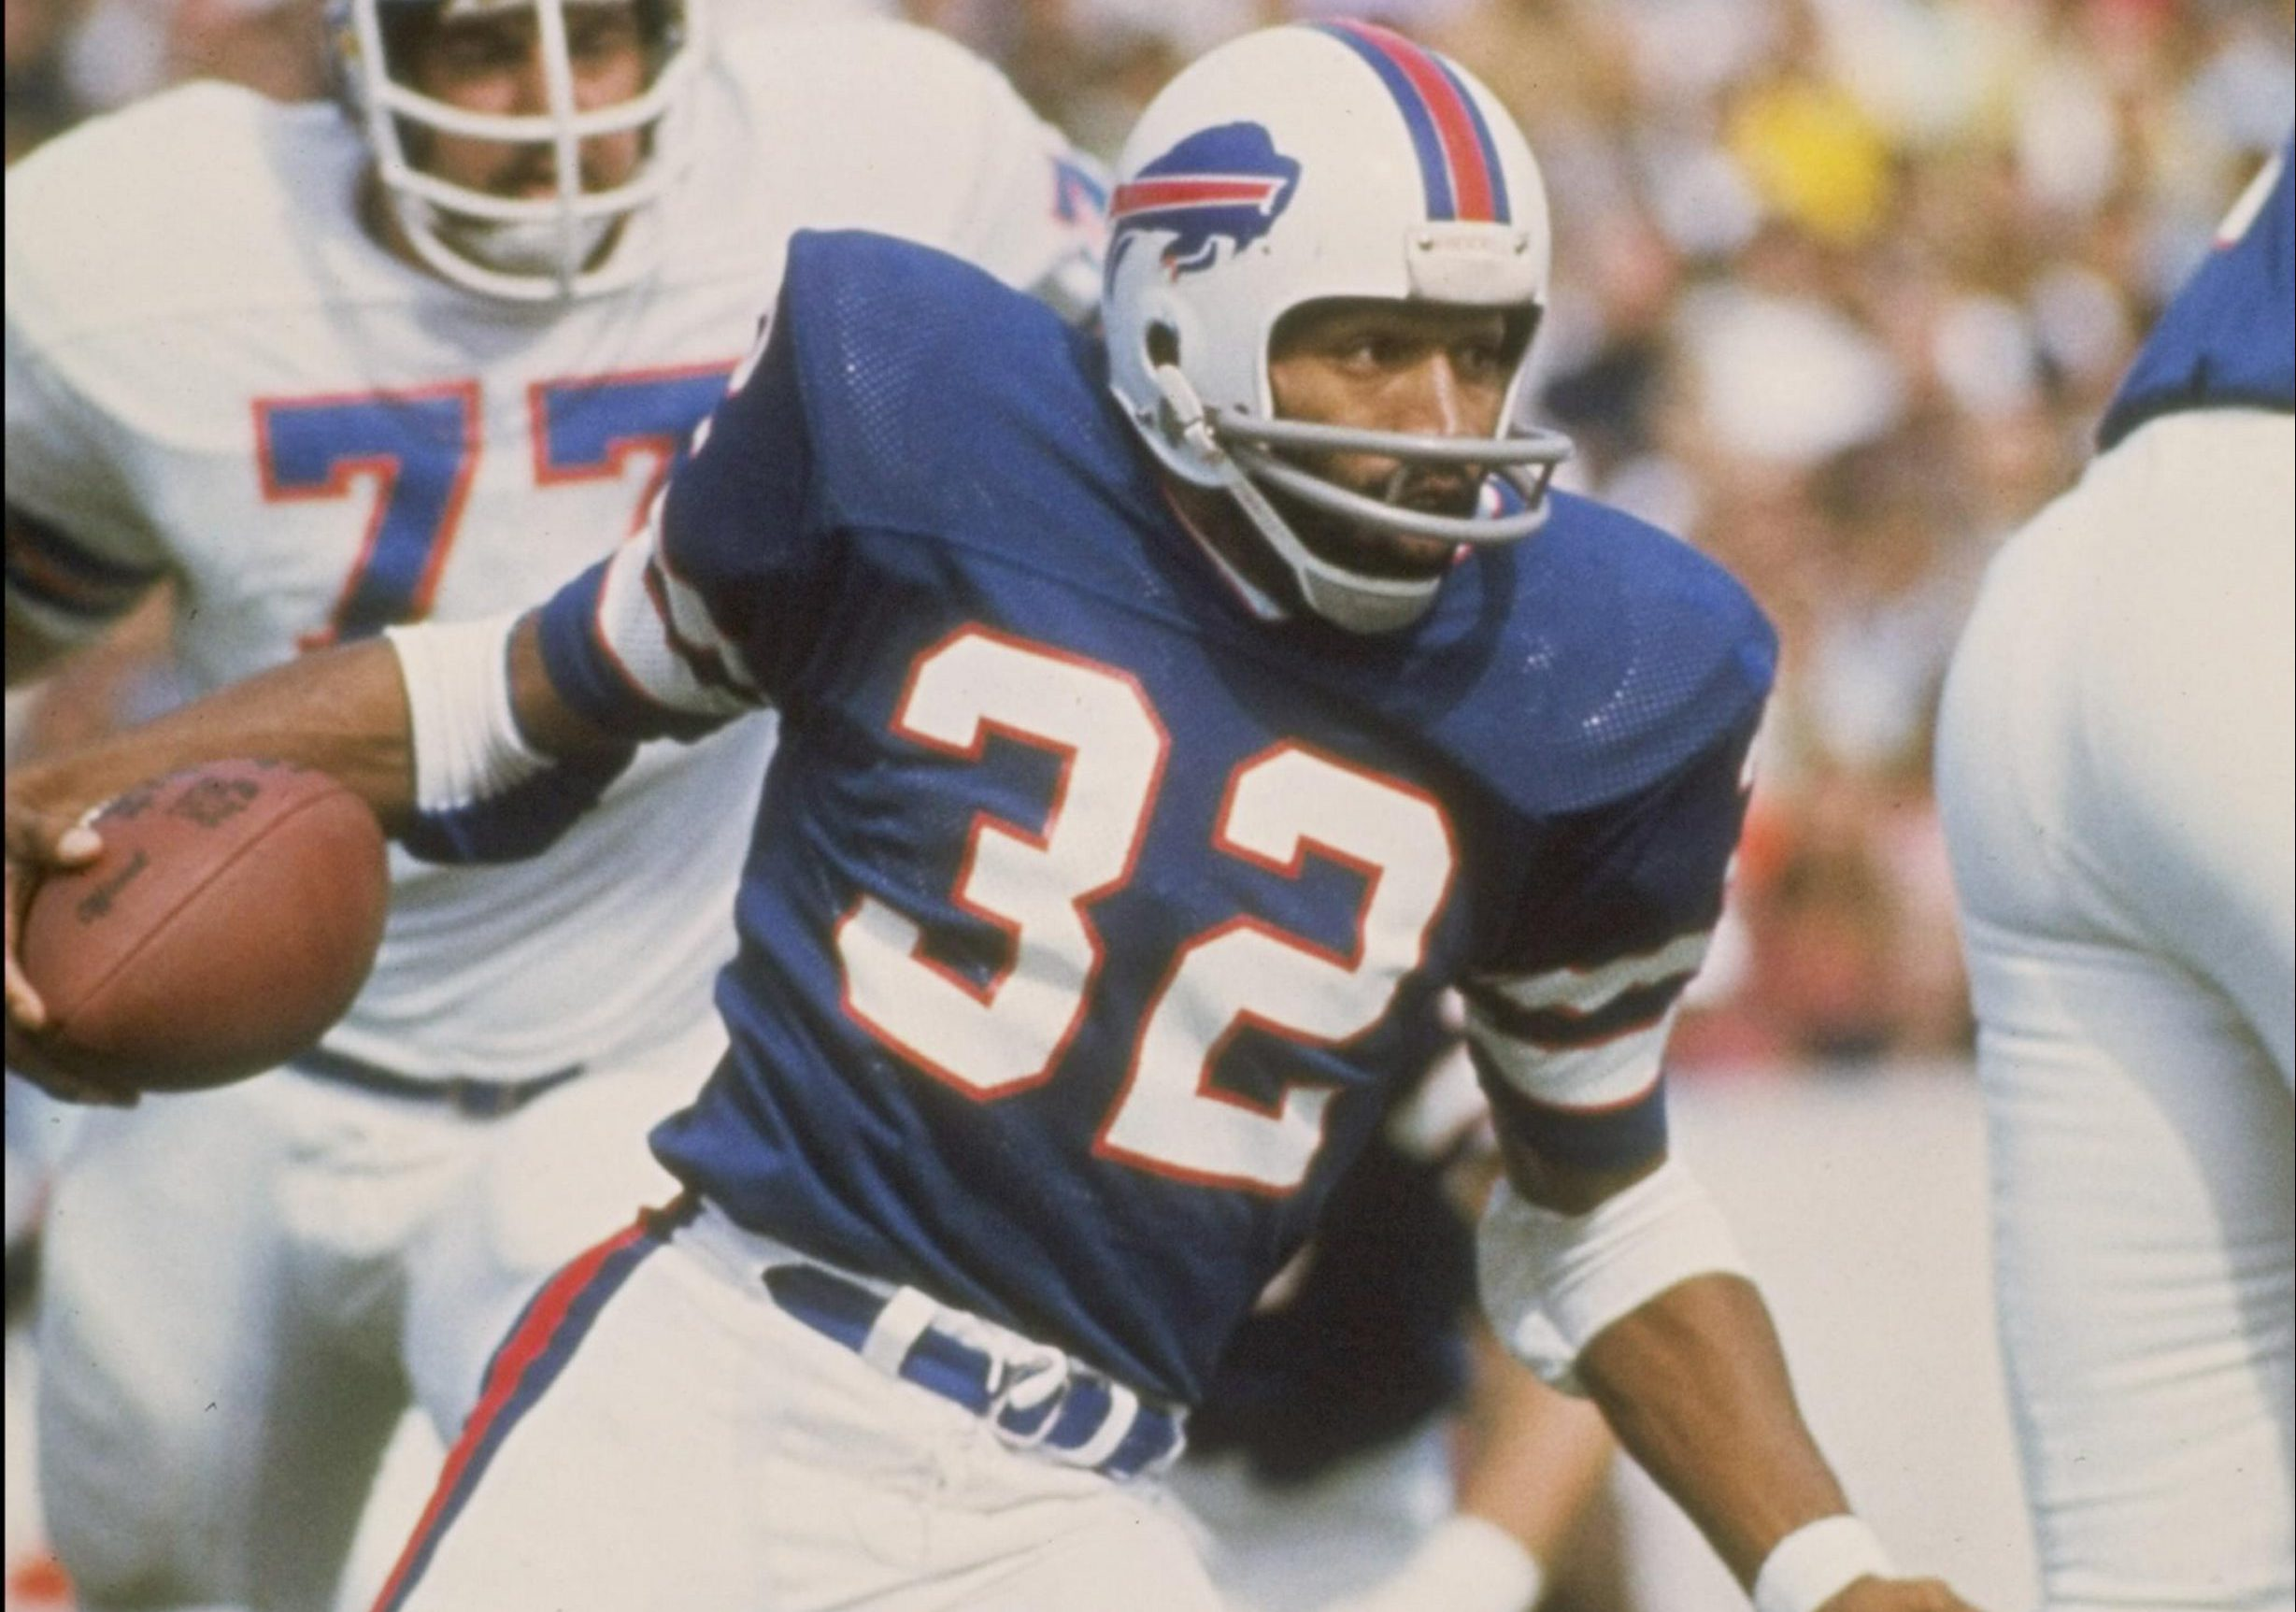 O.J. Simpson played nine of his 11 NFL seasons for the Bills. He set the NFL record for rushing yardage in a single game on this date in 1976. (Getty Images)